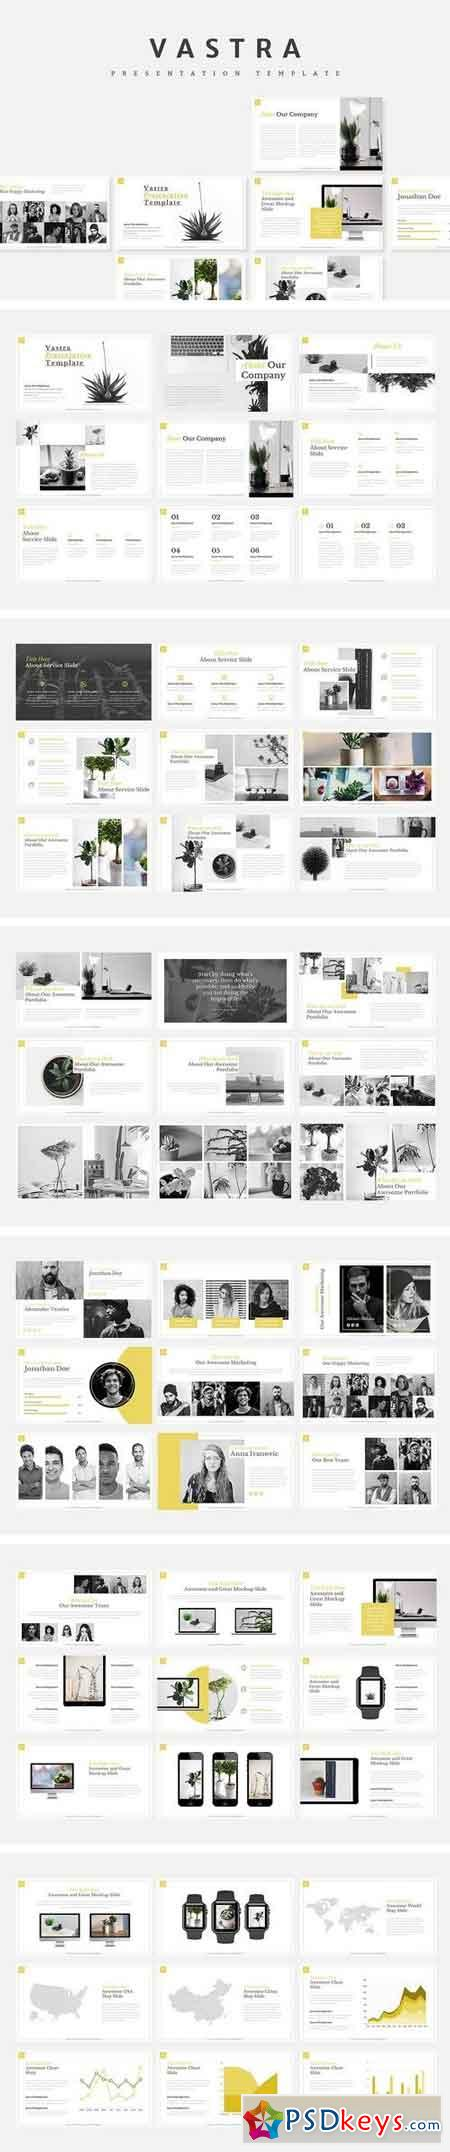 Vastra Creative Powerpoint Template 1949105